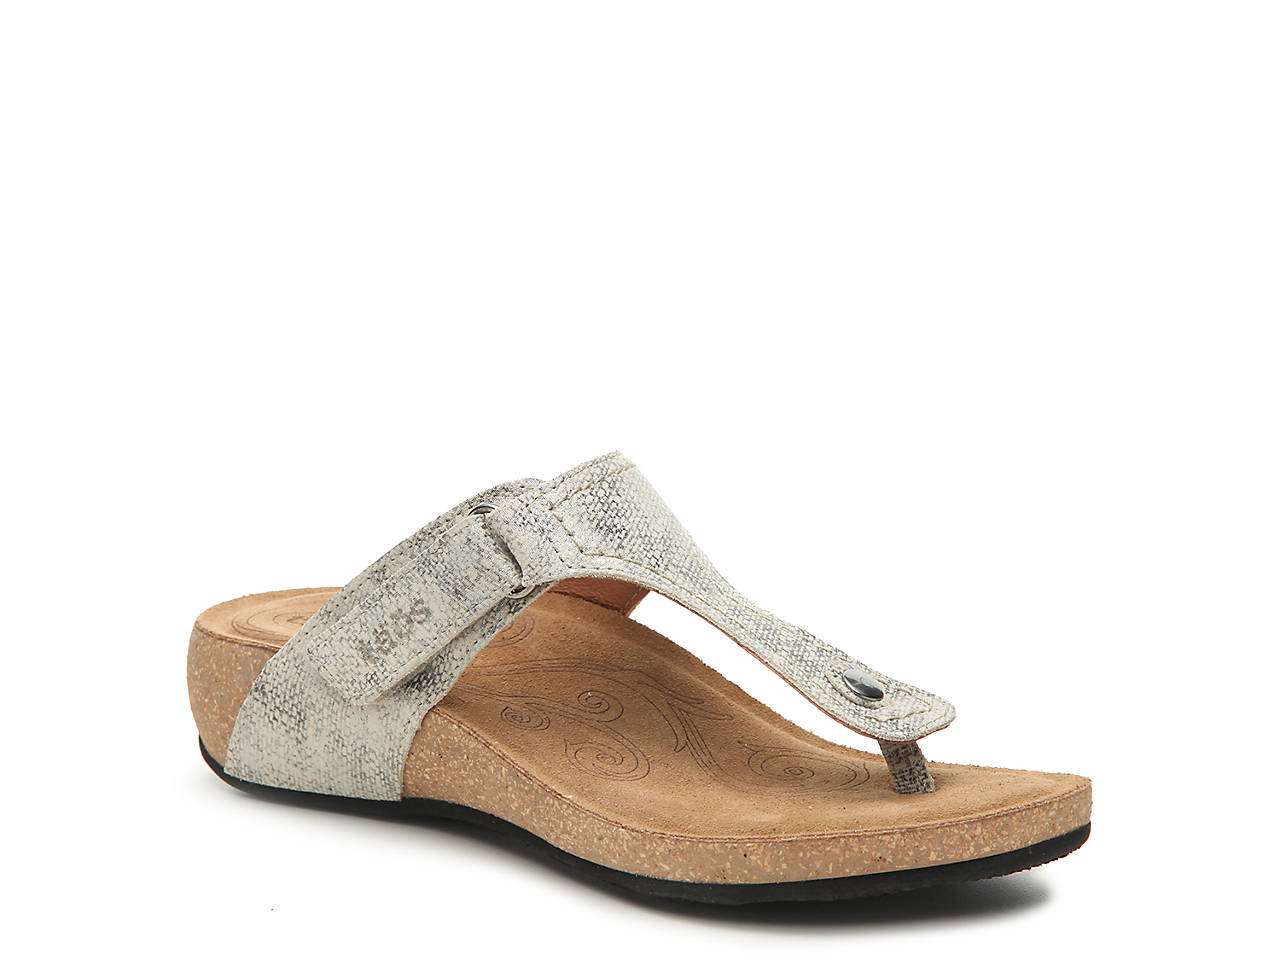 9a0d55dee658a Taos Lucy Wedge Sandal Women s Shoes